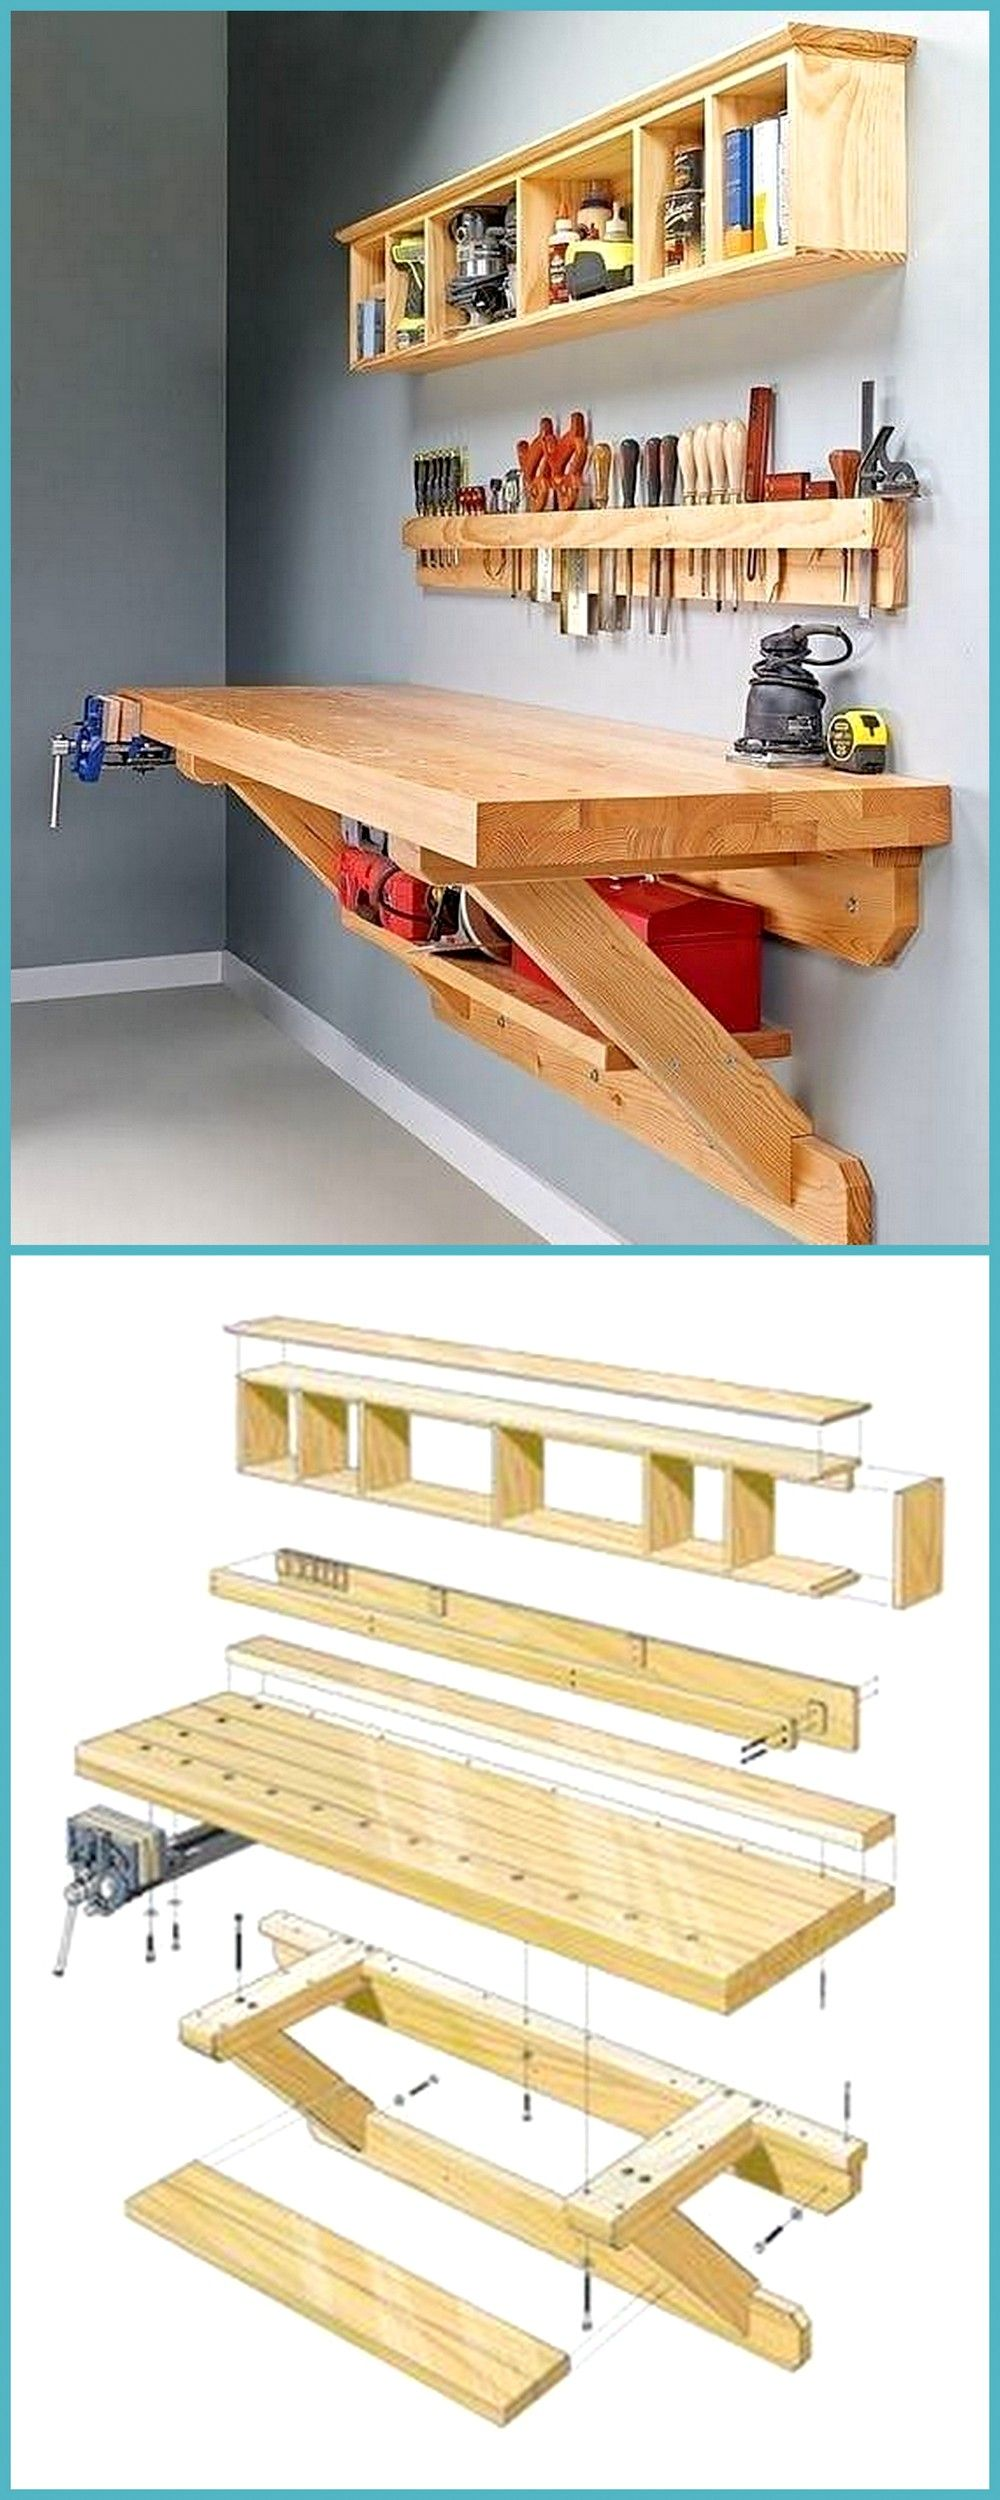 Must Try Ideas From Pallet Wood Projetos De Carpintaria Simples